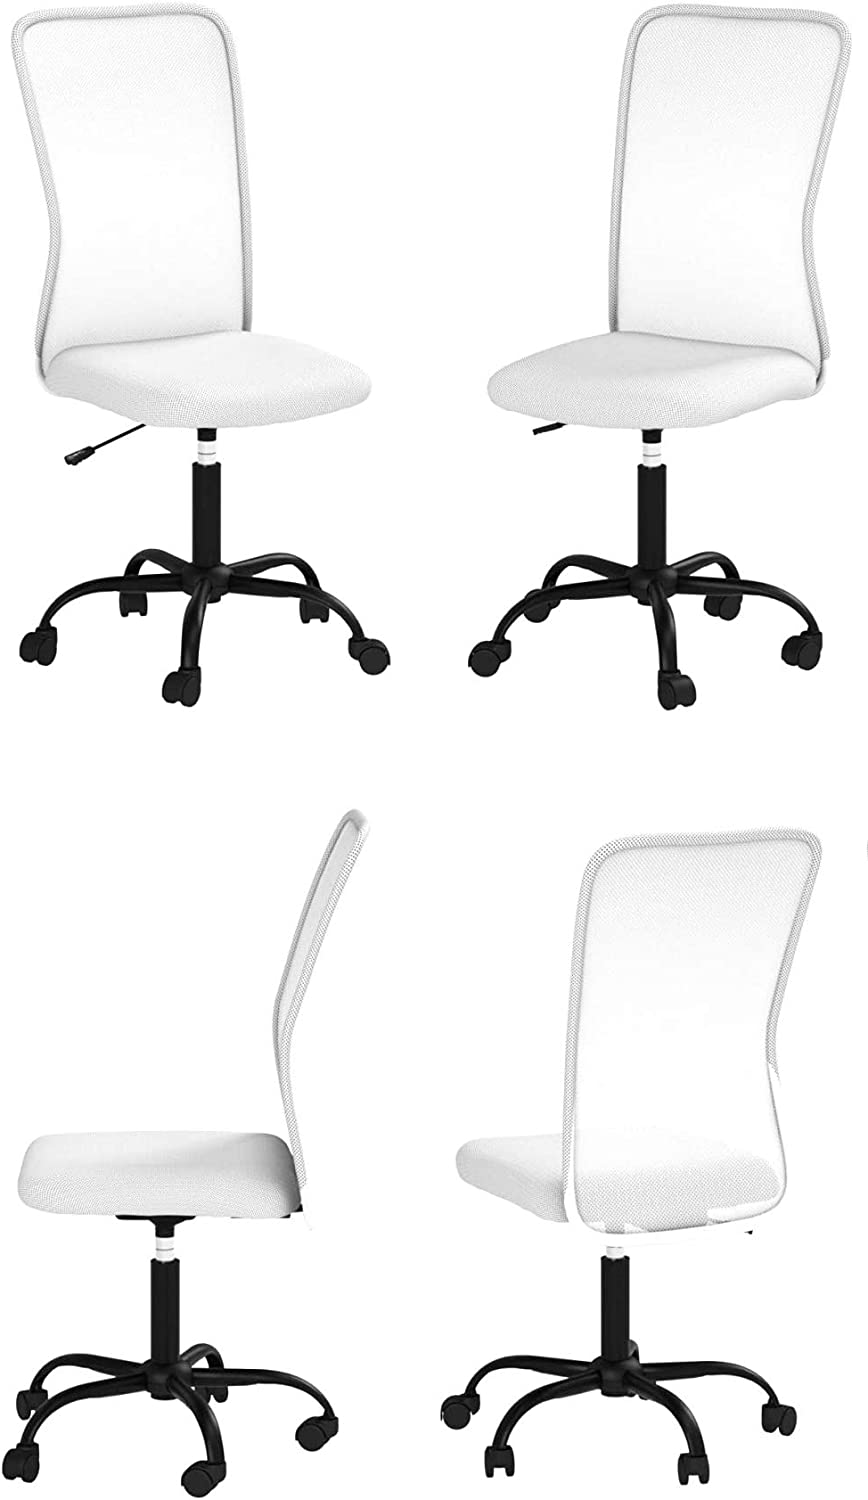 Ergonomic Cute Mesh Office Chair, Armless Lumbar Support, Chic Modern Desk PC Chair Black, Mid Back Adjustable Swivel for Home Office Conference Study Room Mesh Office Chair - White - Set of 4